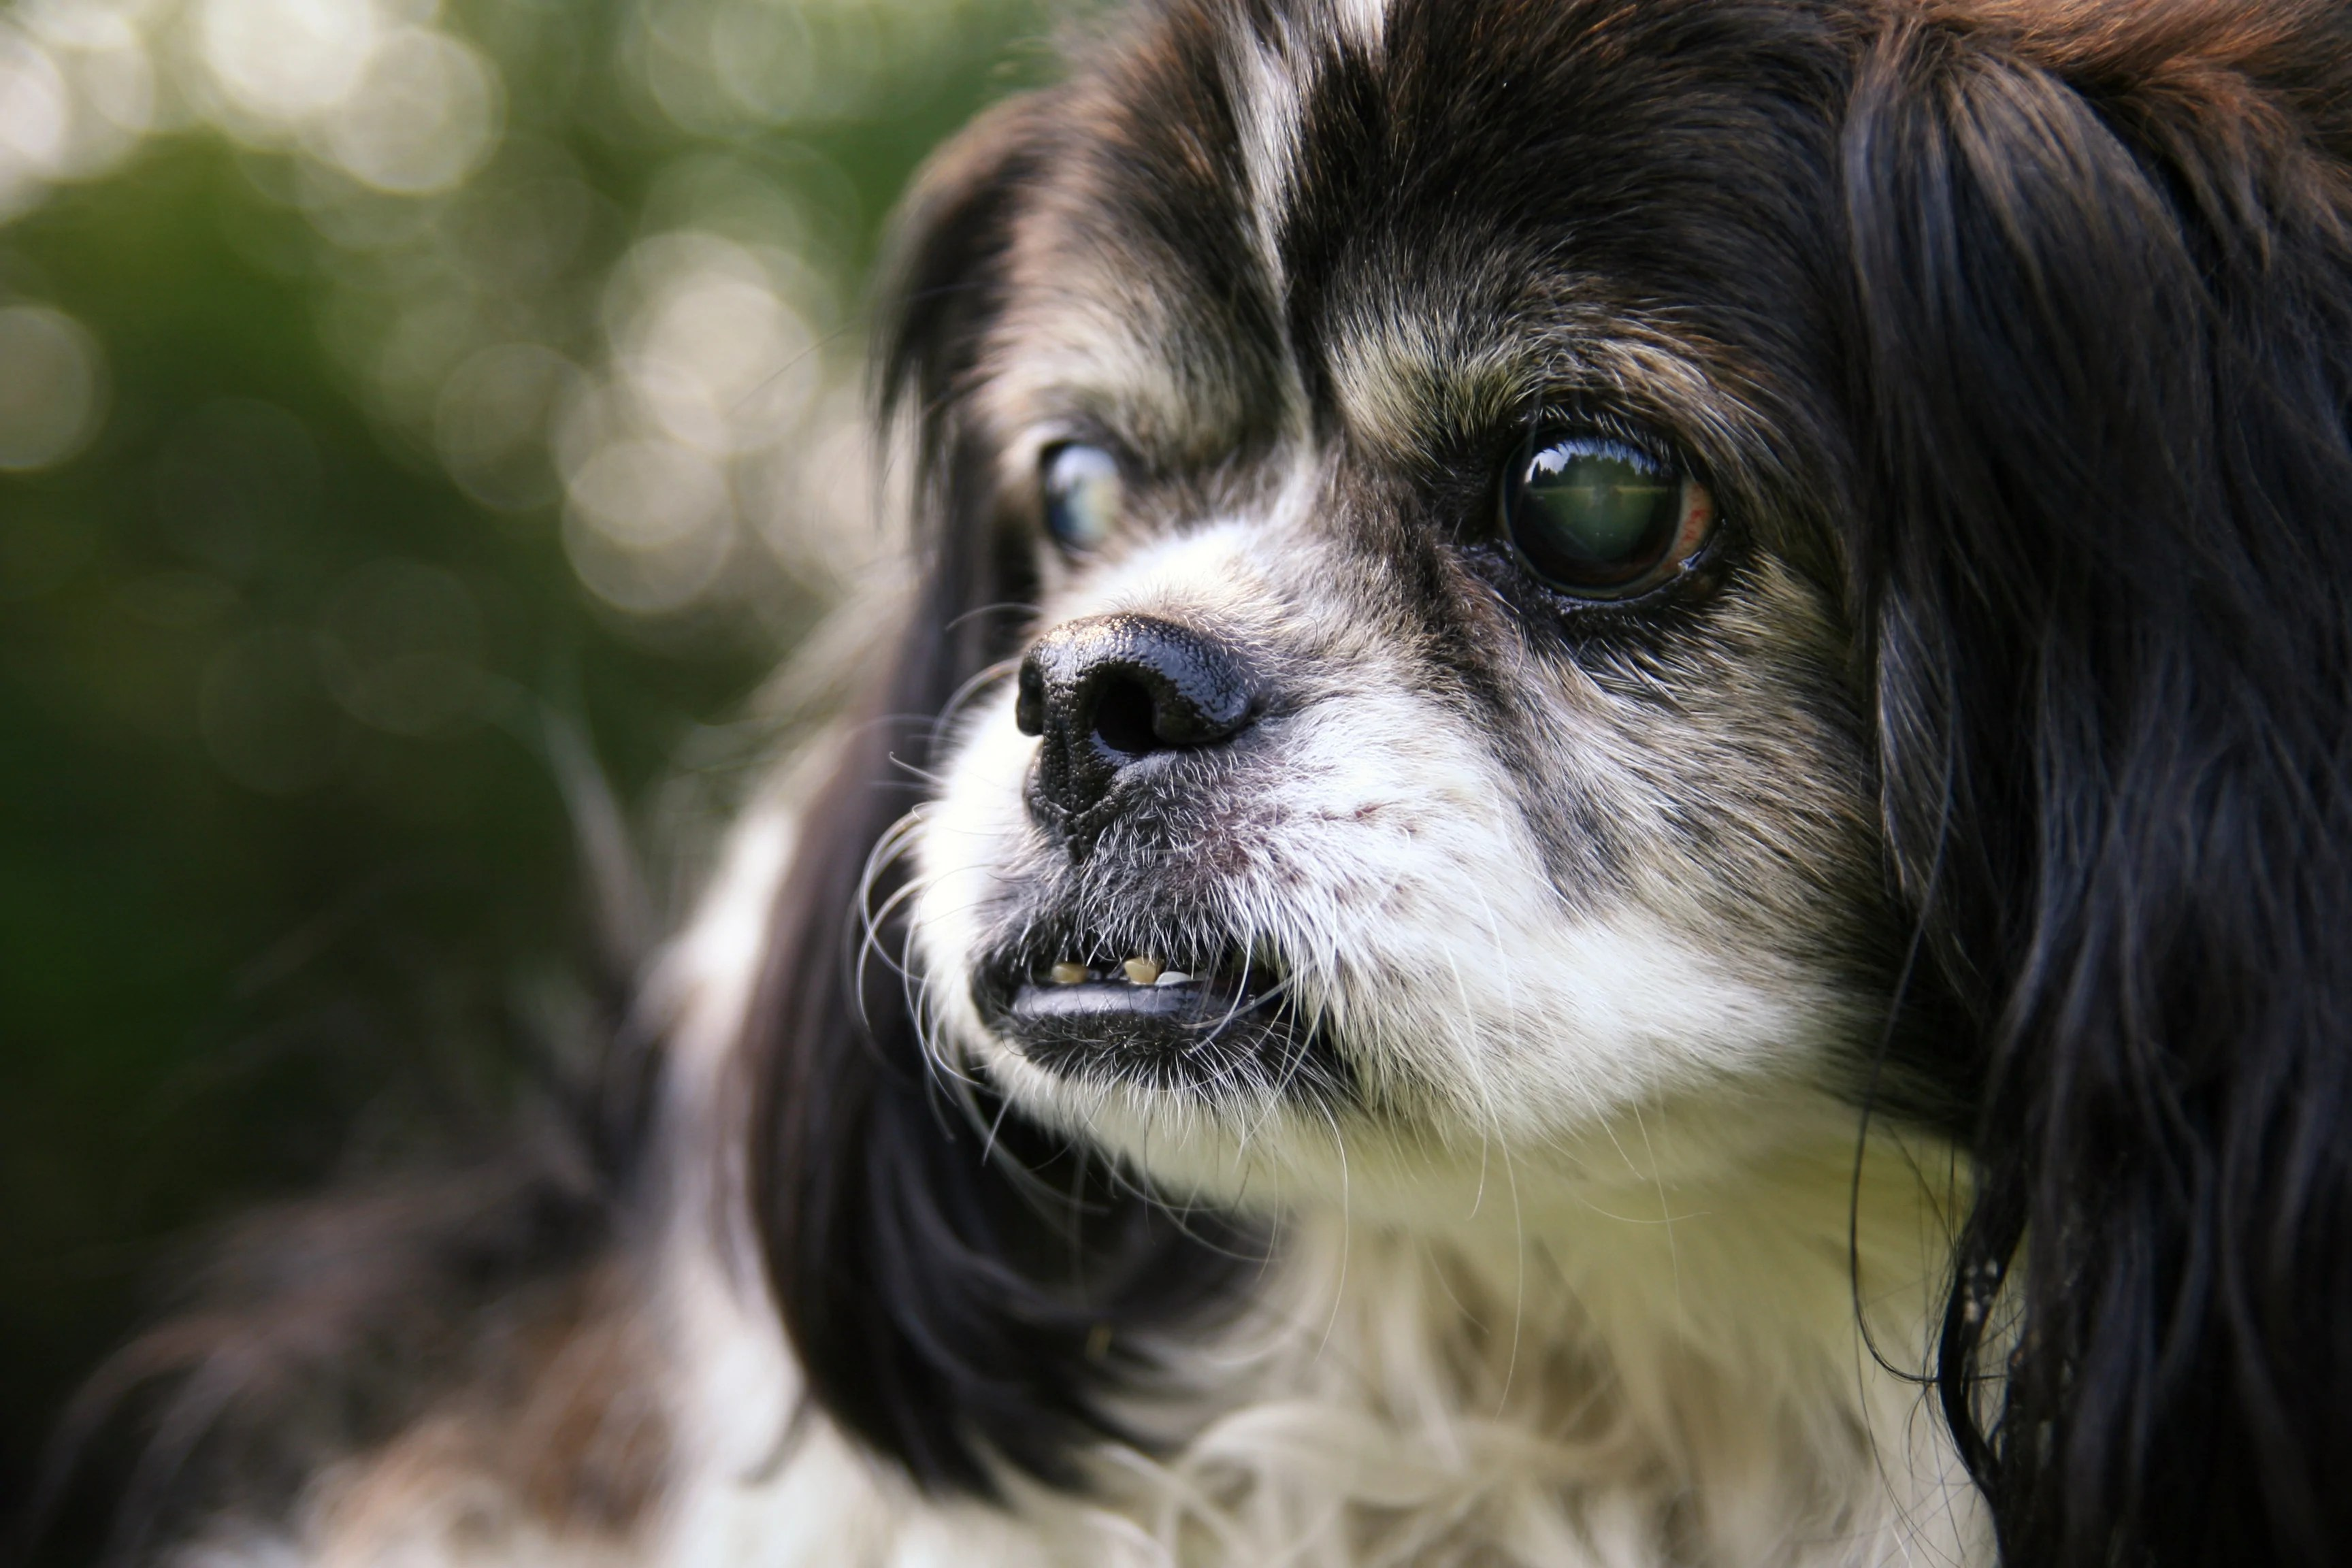 an older dog with cloudy eyes [ 3456 x 2304 Pixel ]